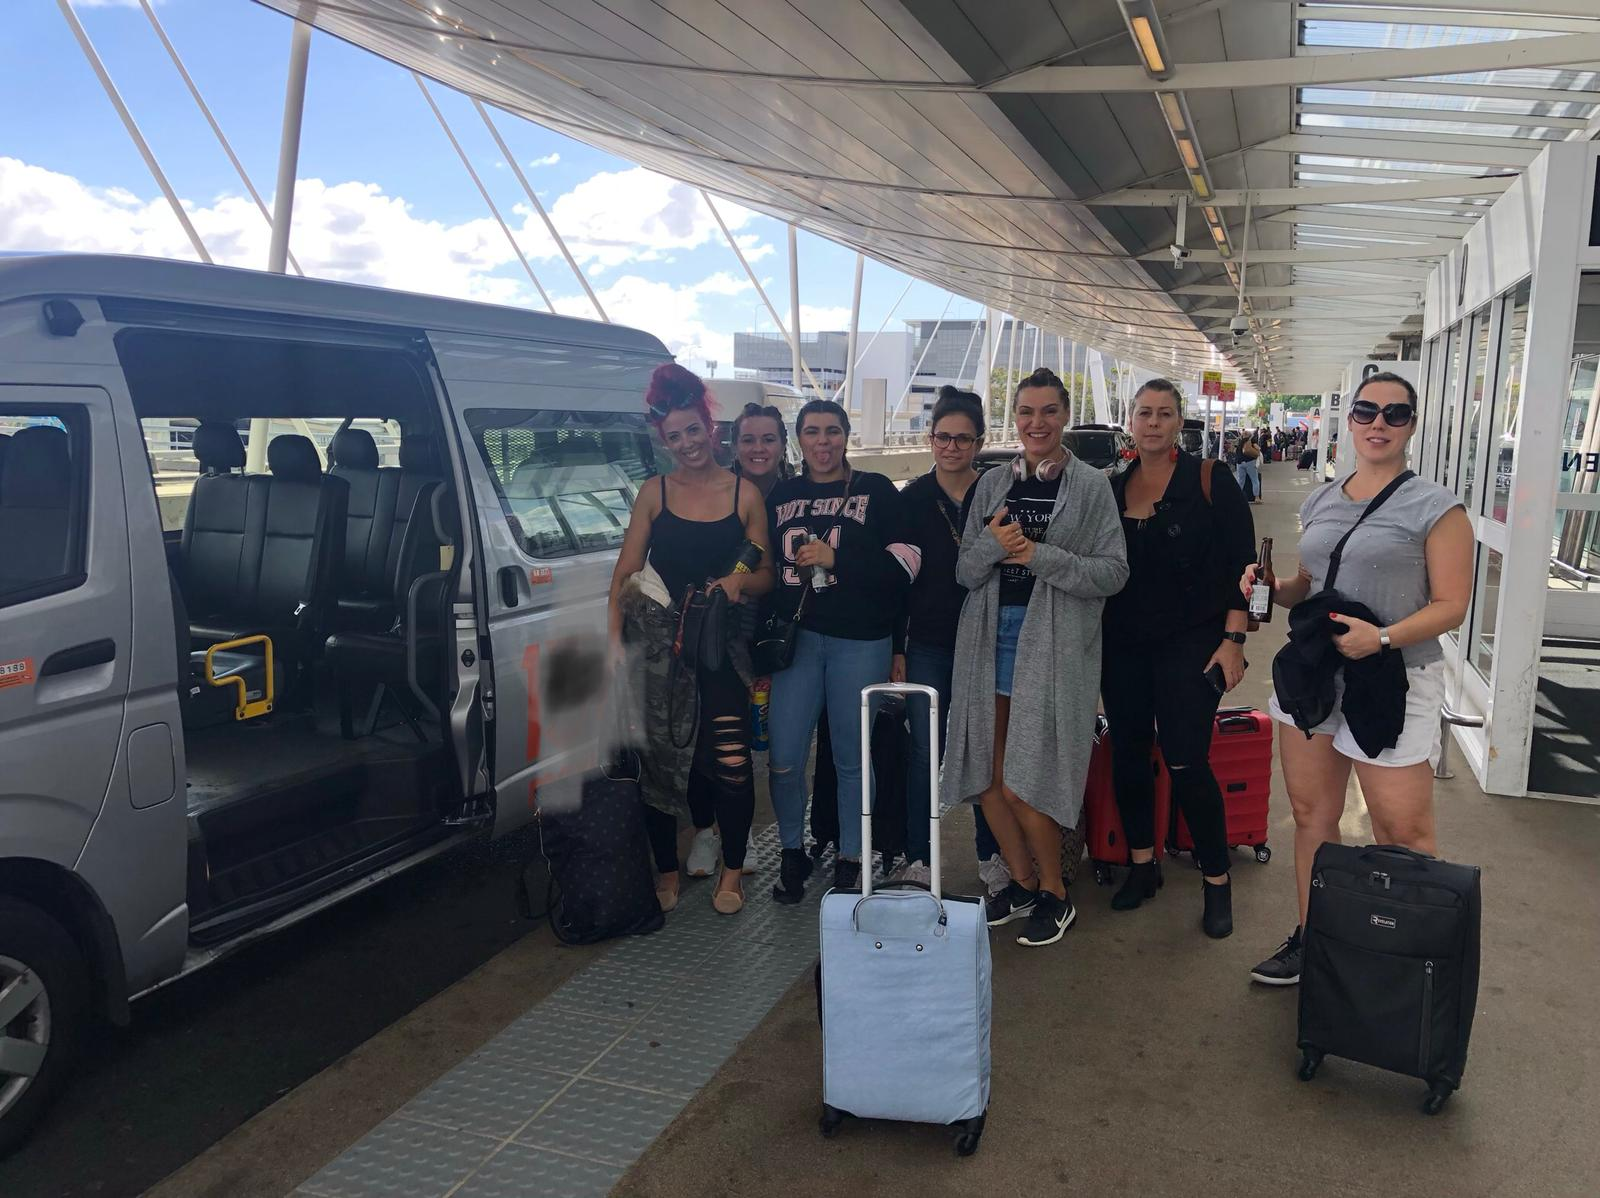 Sydney airport maxi taxi services